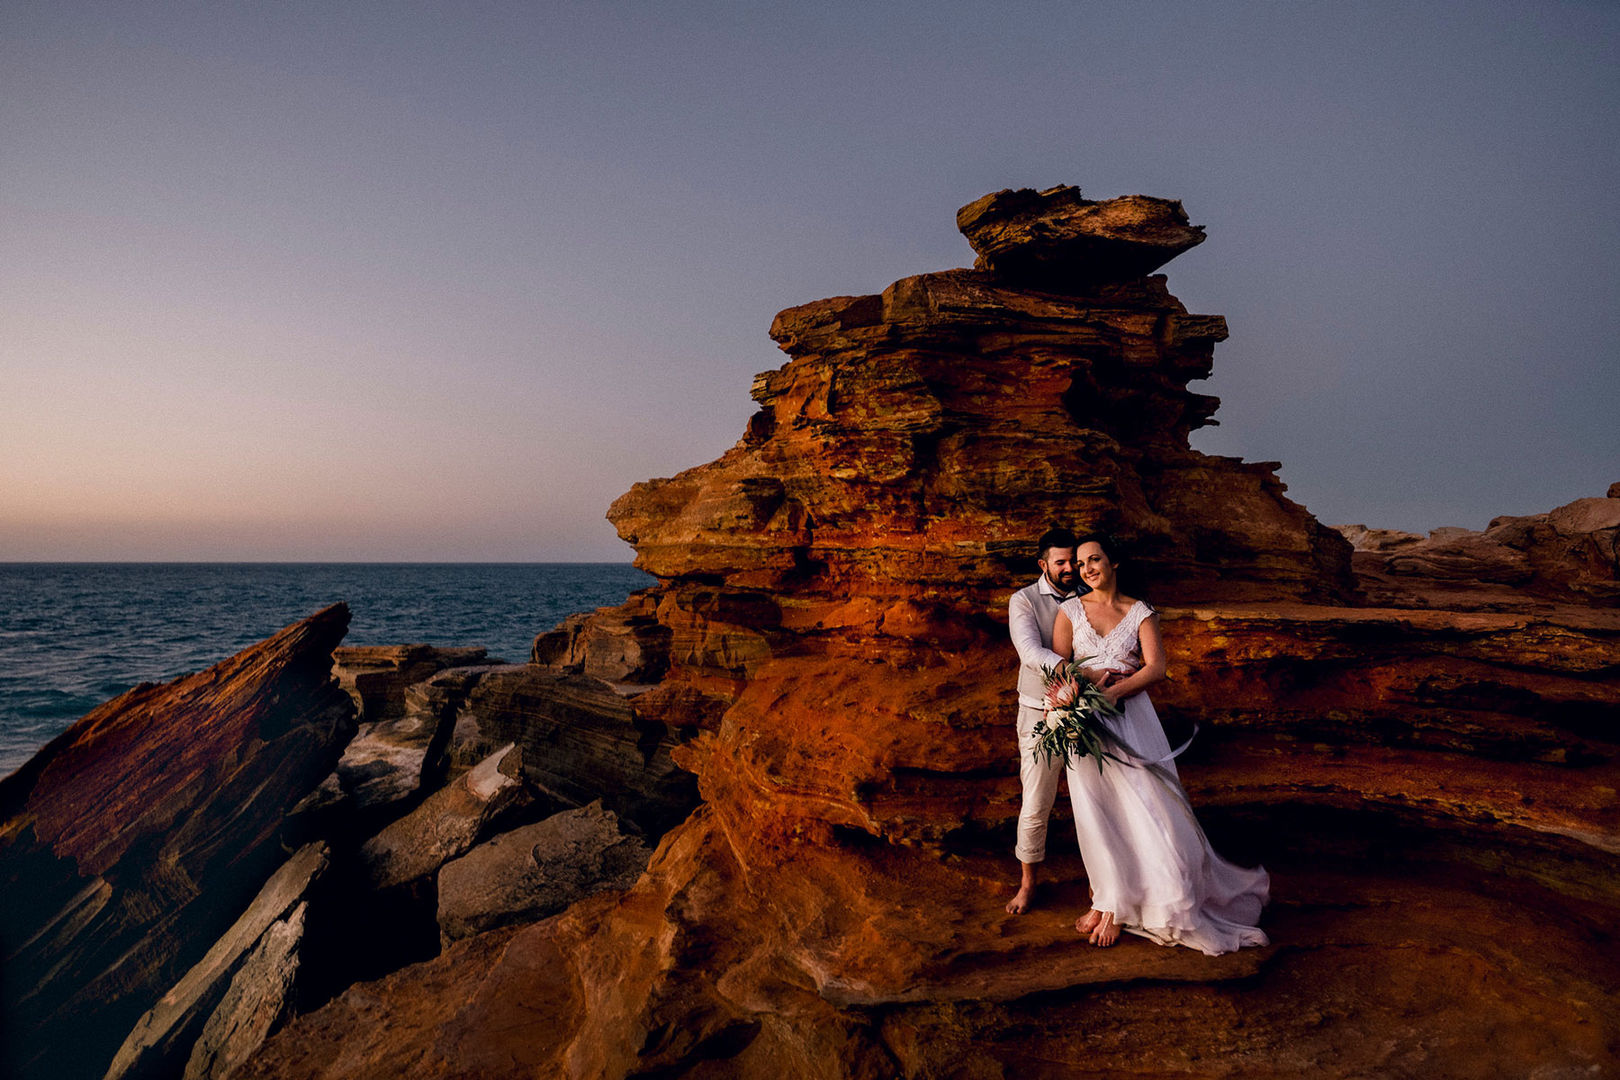 Couple-on-their-wedding-day-Broome.jpg